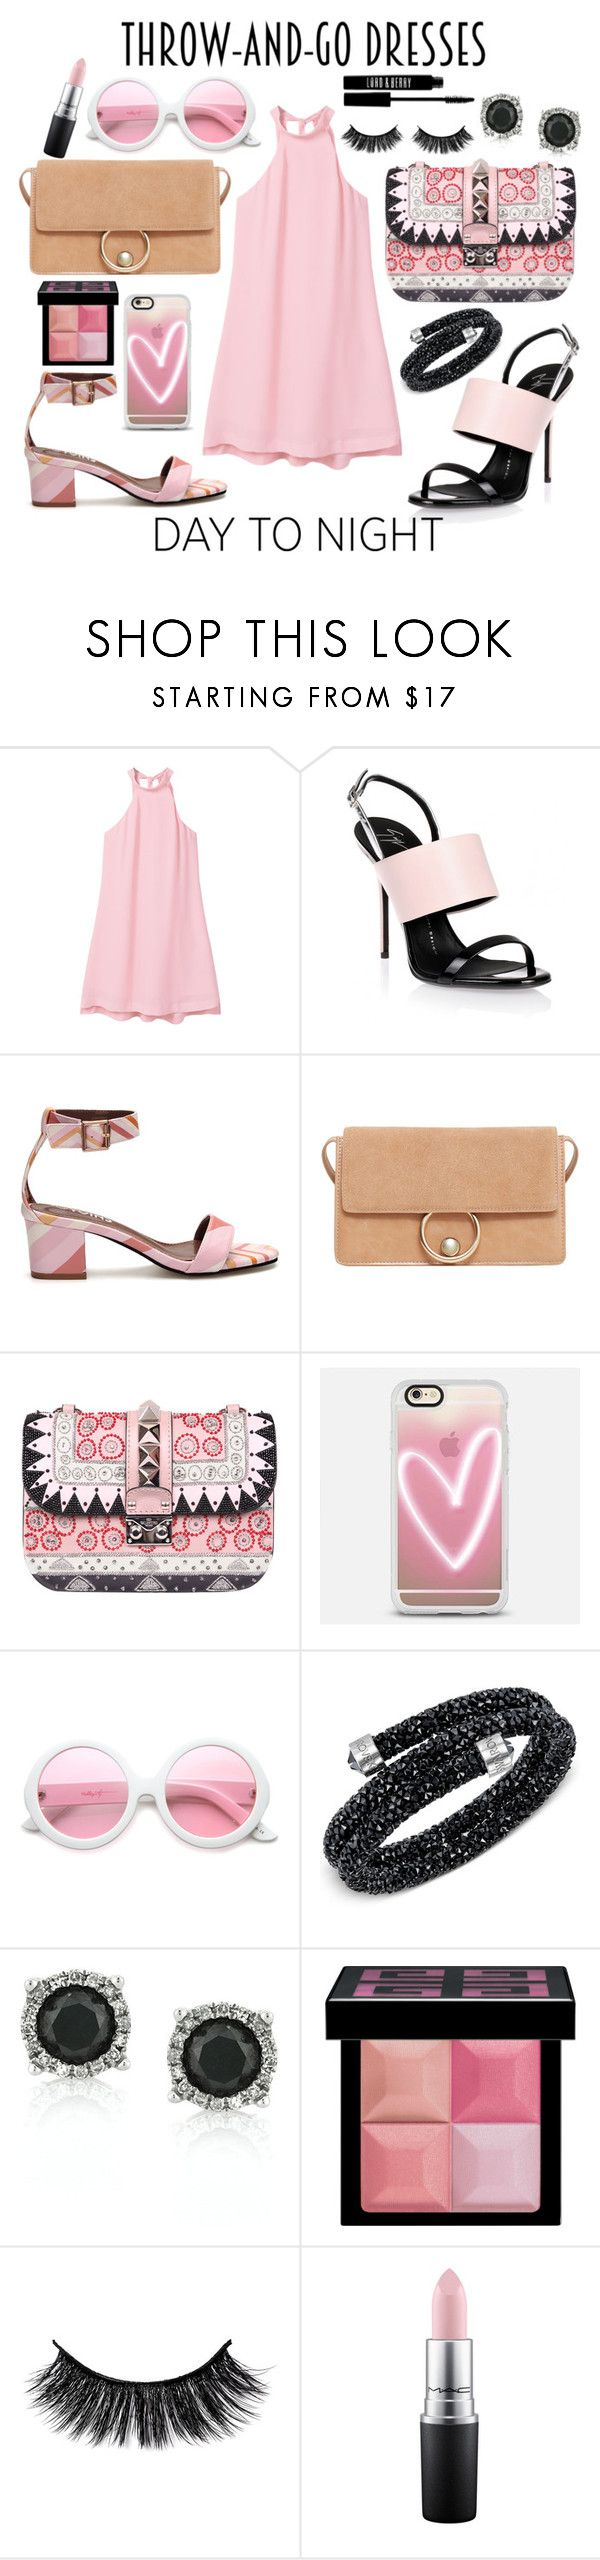 """pink trapeze dress day to night"" by kc-spangler ❤ liked on Polyvore featuring MANGO, Giuseppe Zanotti, Valentino, Casetify, ZeroUV, Swarovski, Mark Broumand, Givenchy, MAC Cosmetics and Lord & Berry"